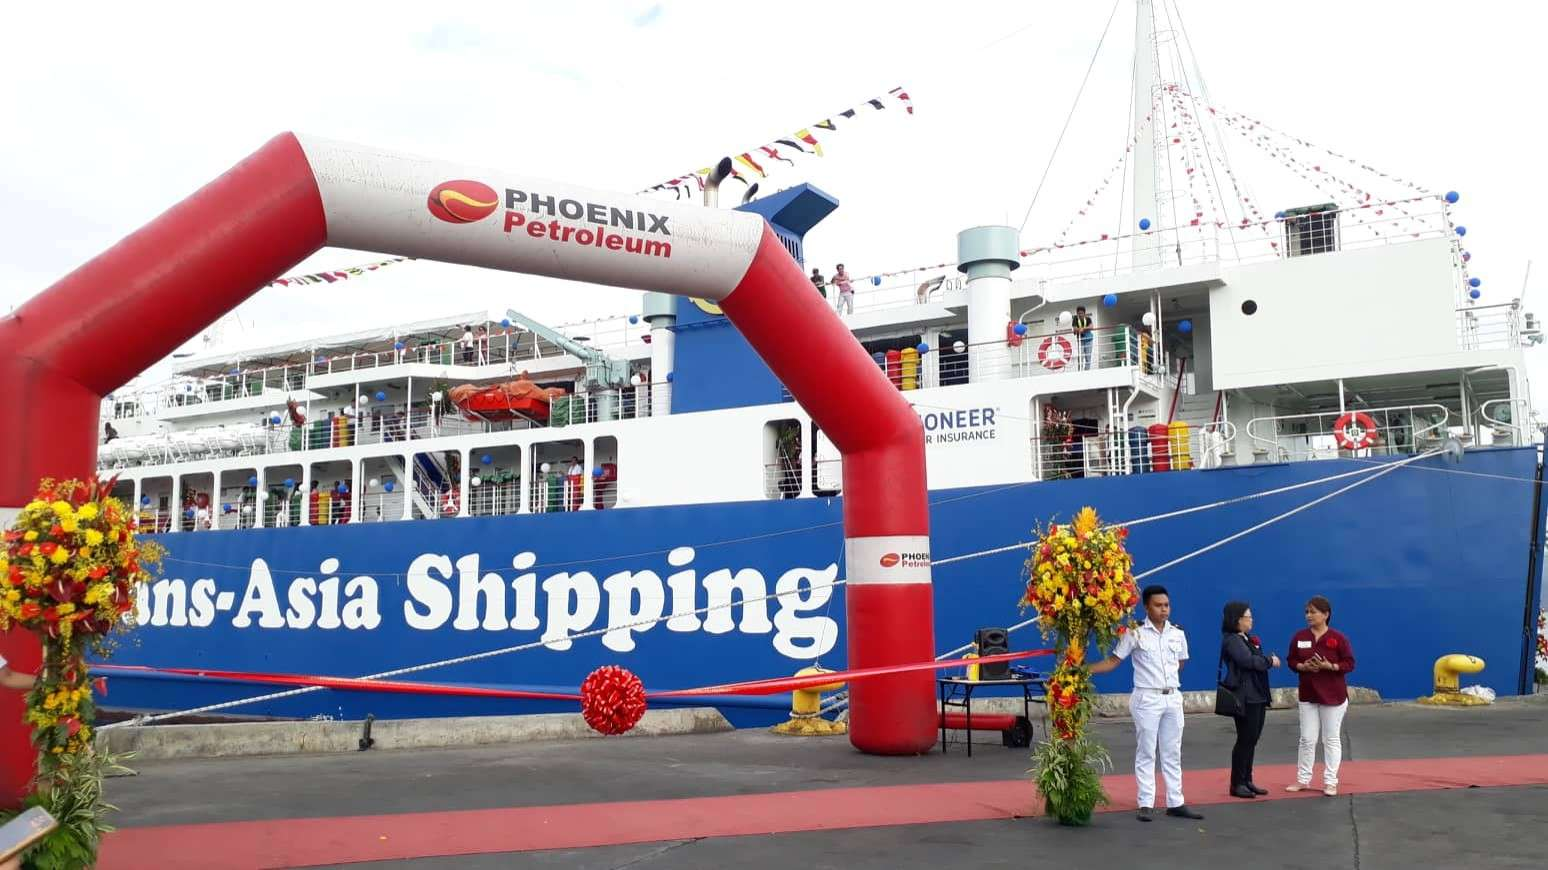 CAGAYAN DE ORO. M/V Trans-Asia 19 awaits ribbon-cutting ceremony during its launch on March 2, at the Macabalan Port, Cagayan de Oro City. (JoAnn Sablad)